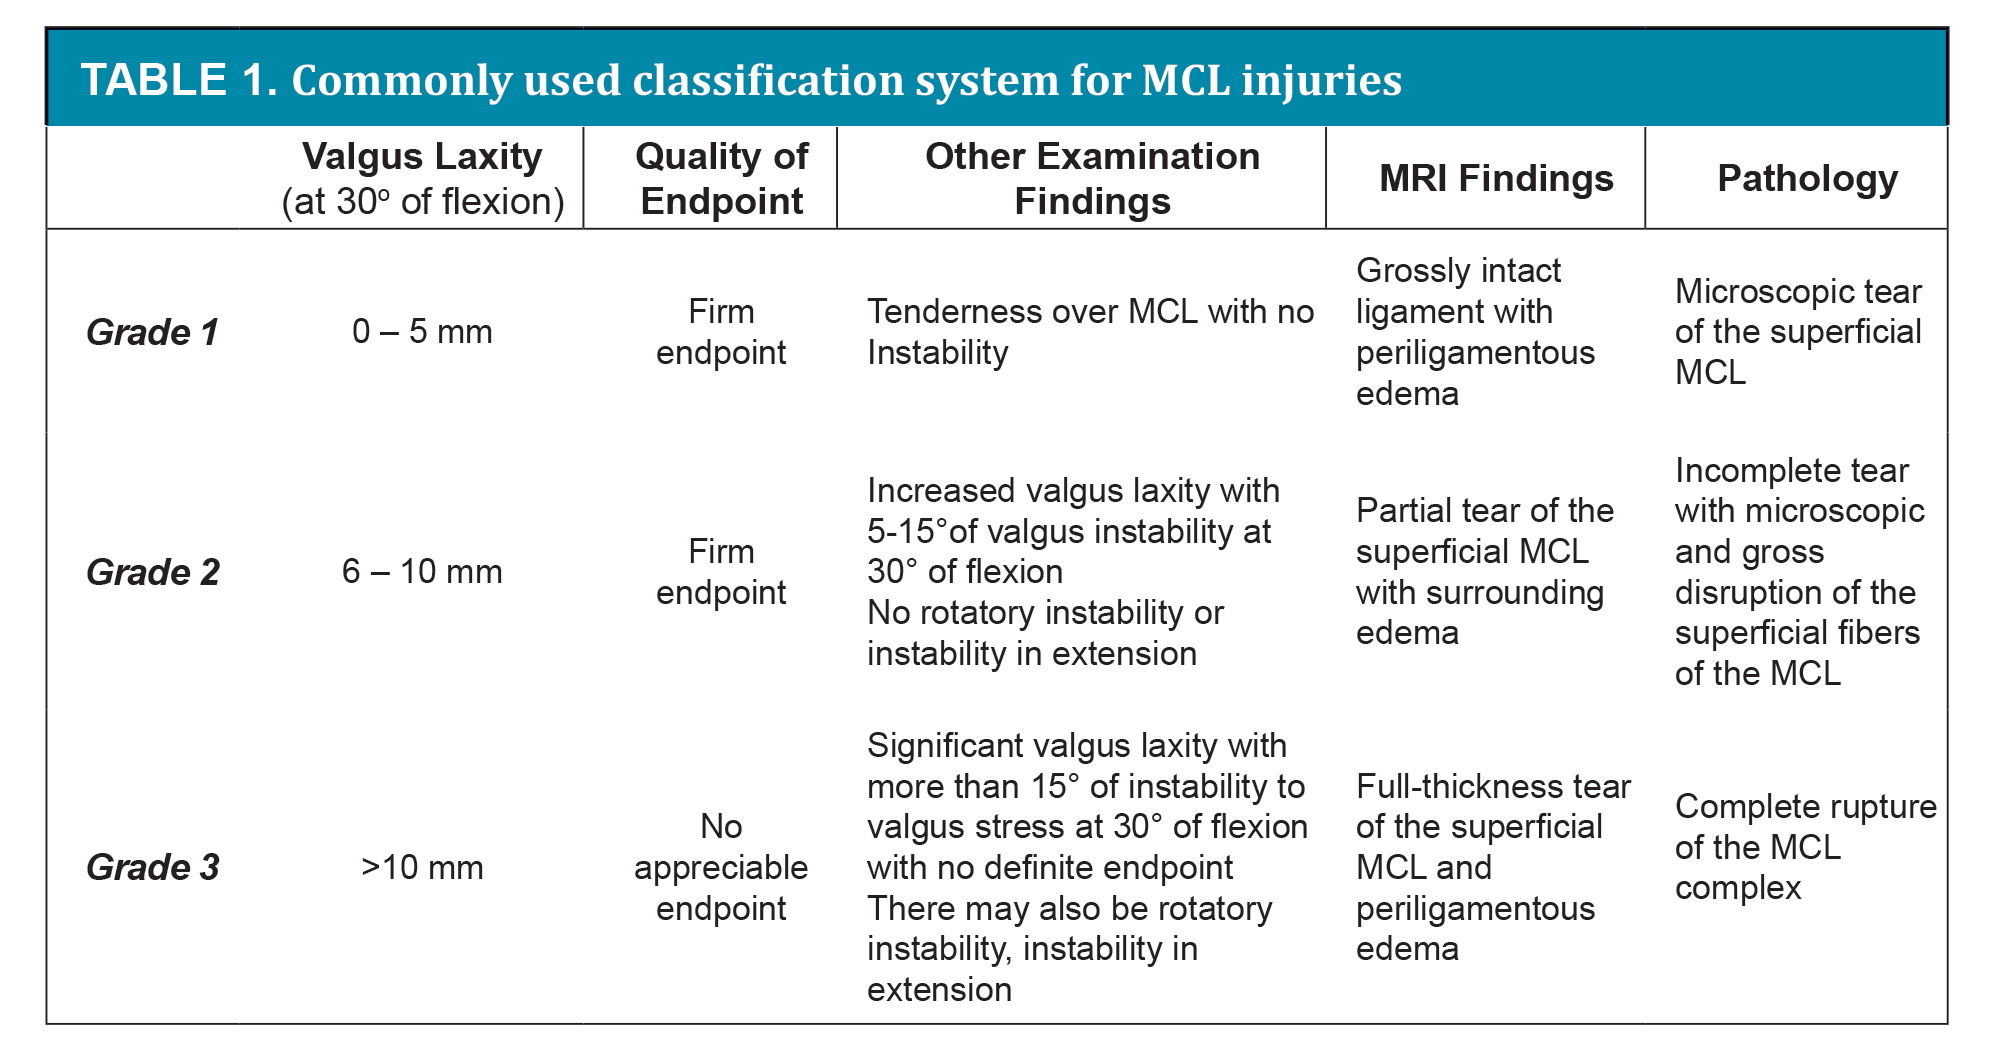 the orthopaedic journal at harvard medical school article there are several classification systems for mcl injuries which use a combination of clinical valgus laxity quality of endpoint and mri findings to